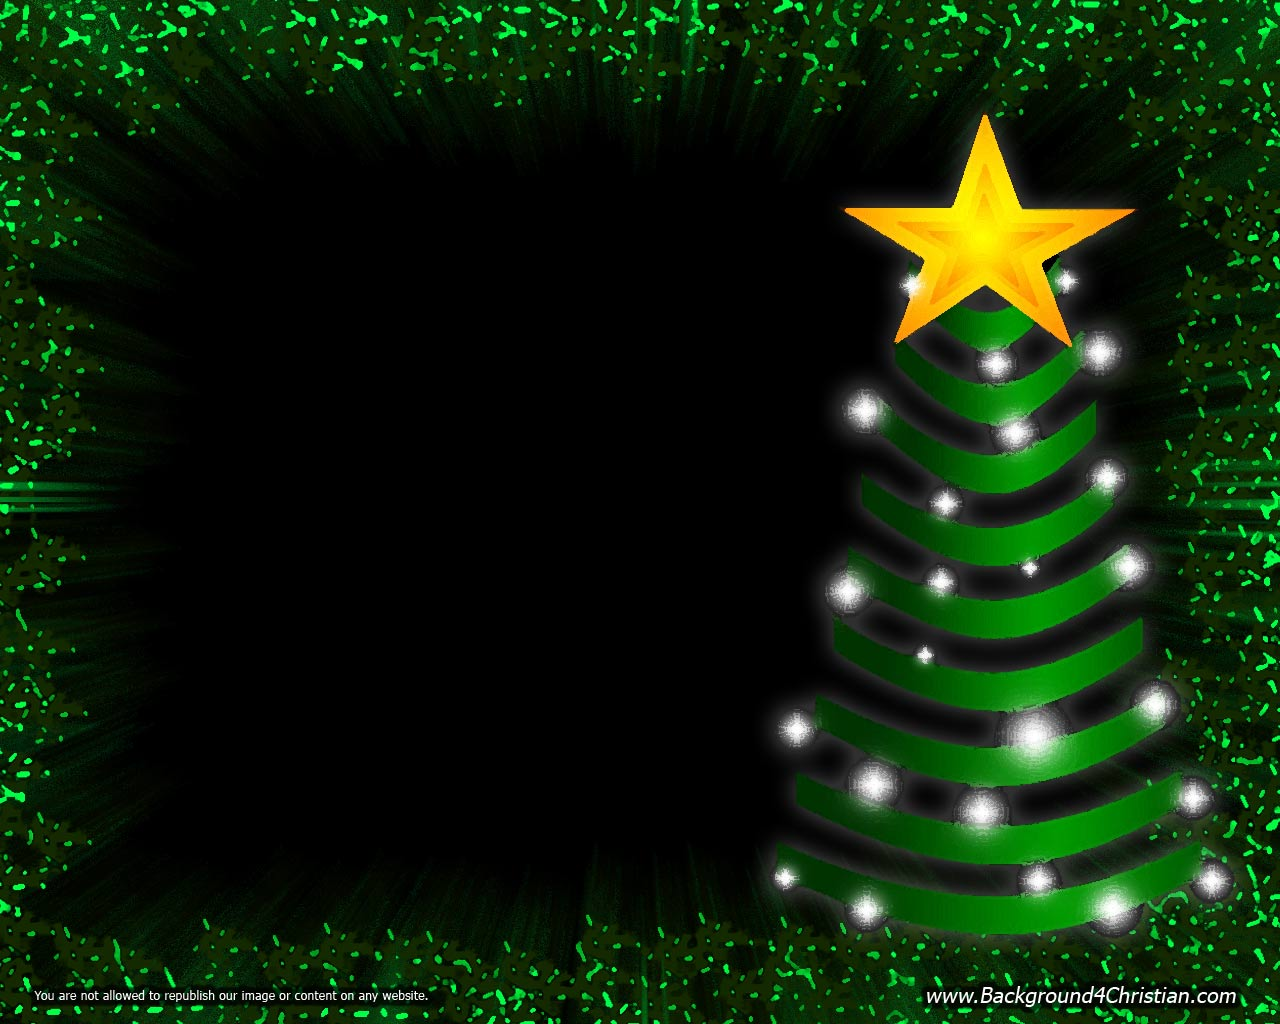 Christmas Template for Powerpoint | Background 4 Christian ...